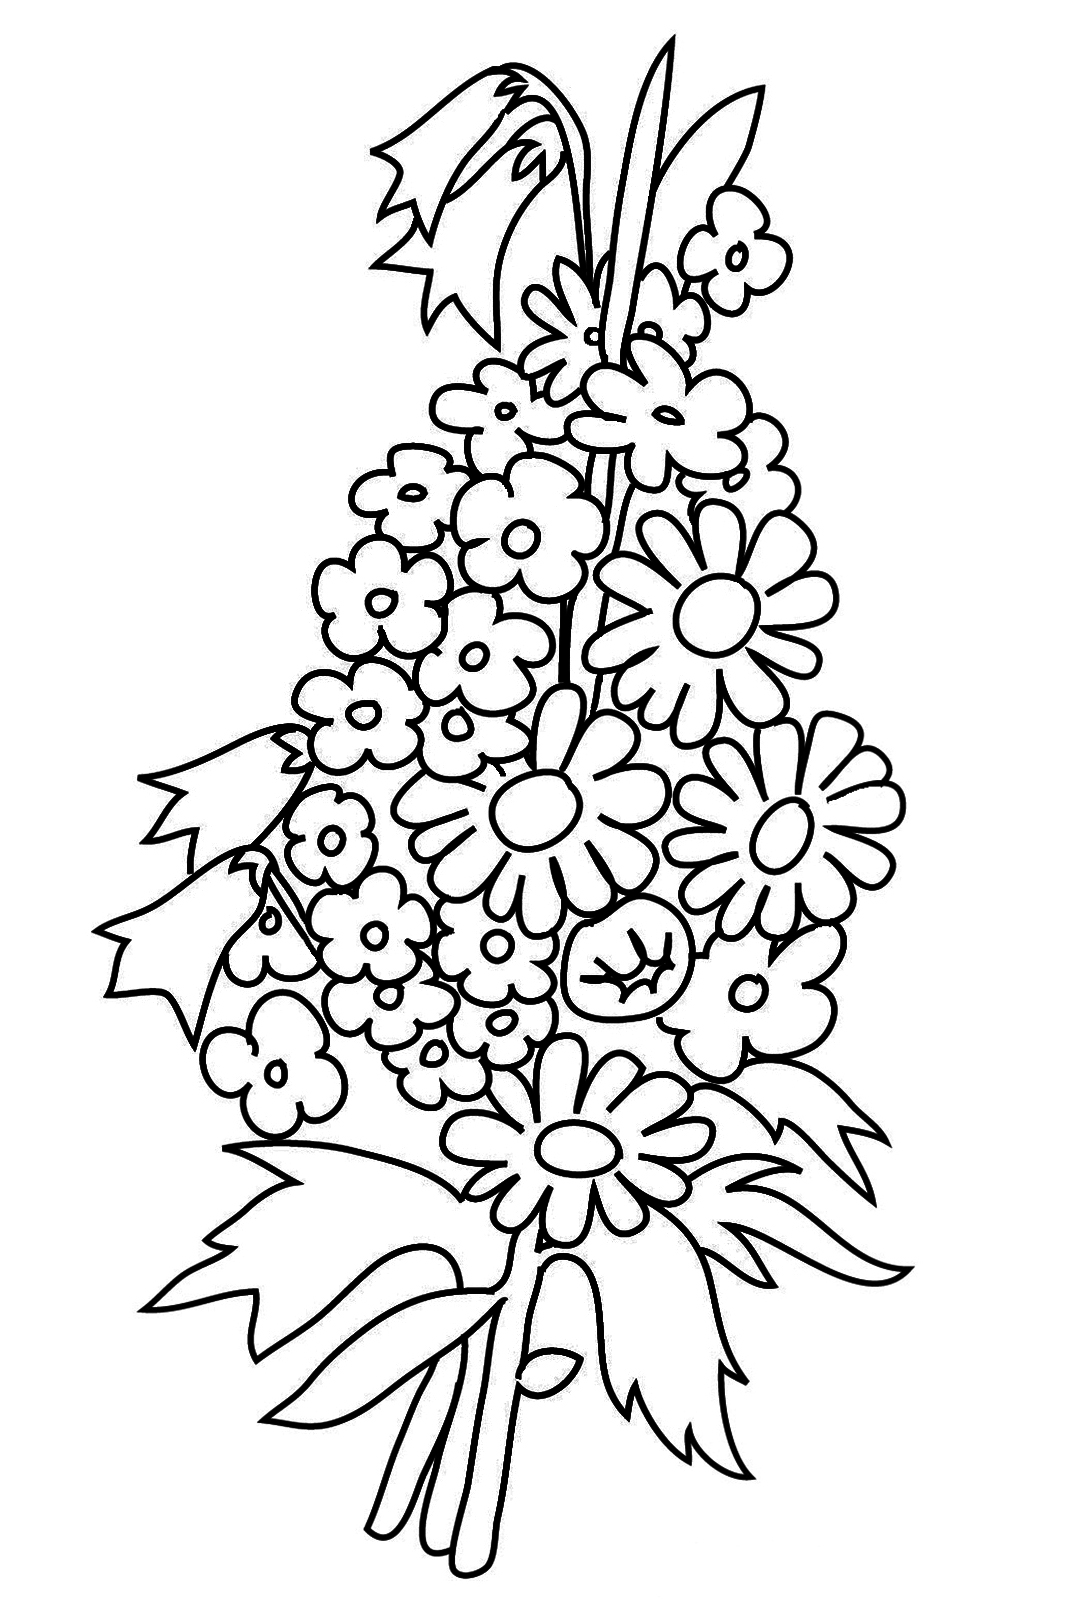 flower bouquet coloring page bouquet of flowers coloring pages for childrens printable bouquet flower page coloring